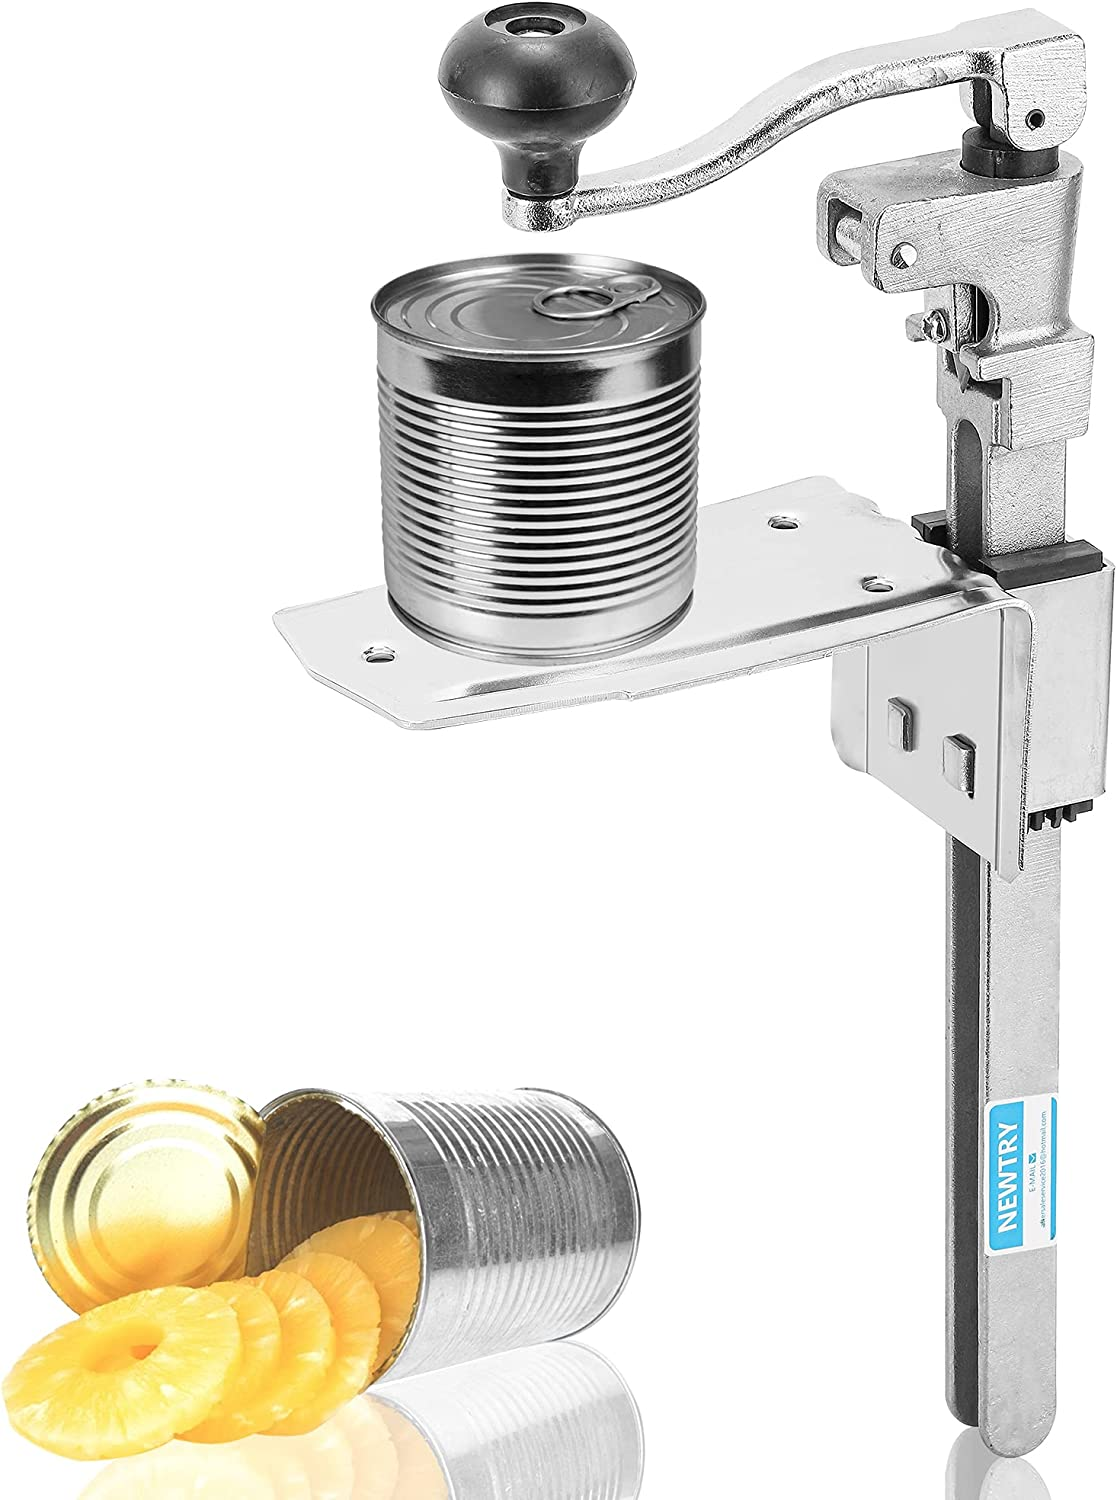 NEWTRY Commercial Tin Can Opener Manual Canning El Paso Mall Max 62% OFF Professional Bot